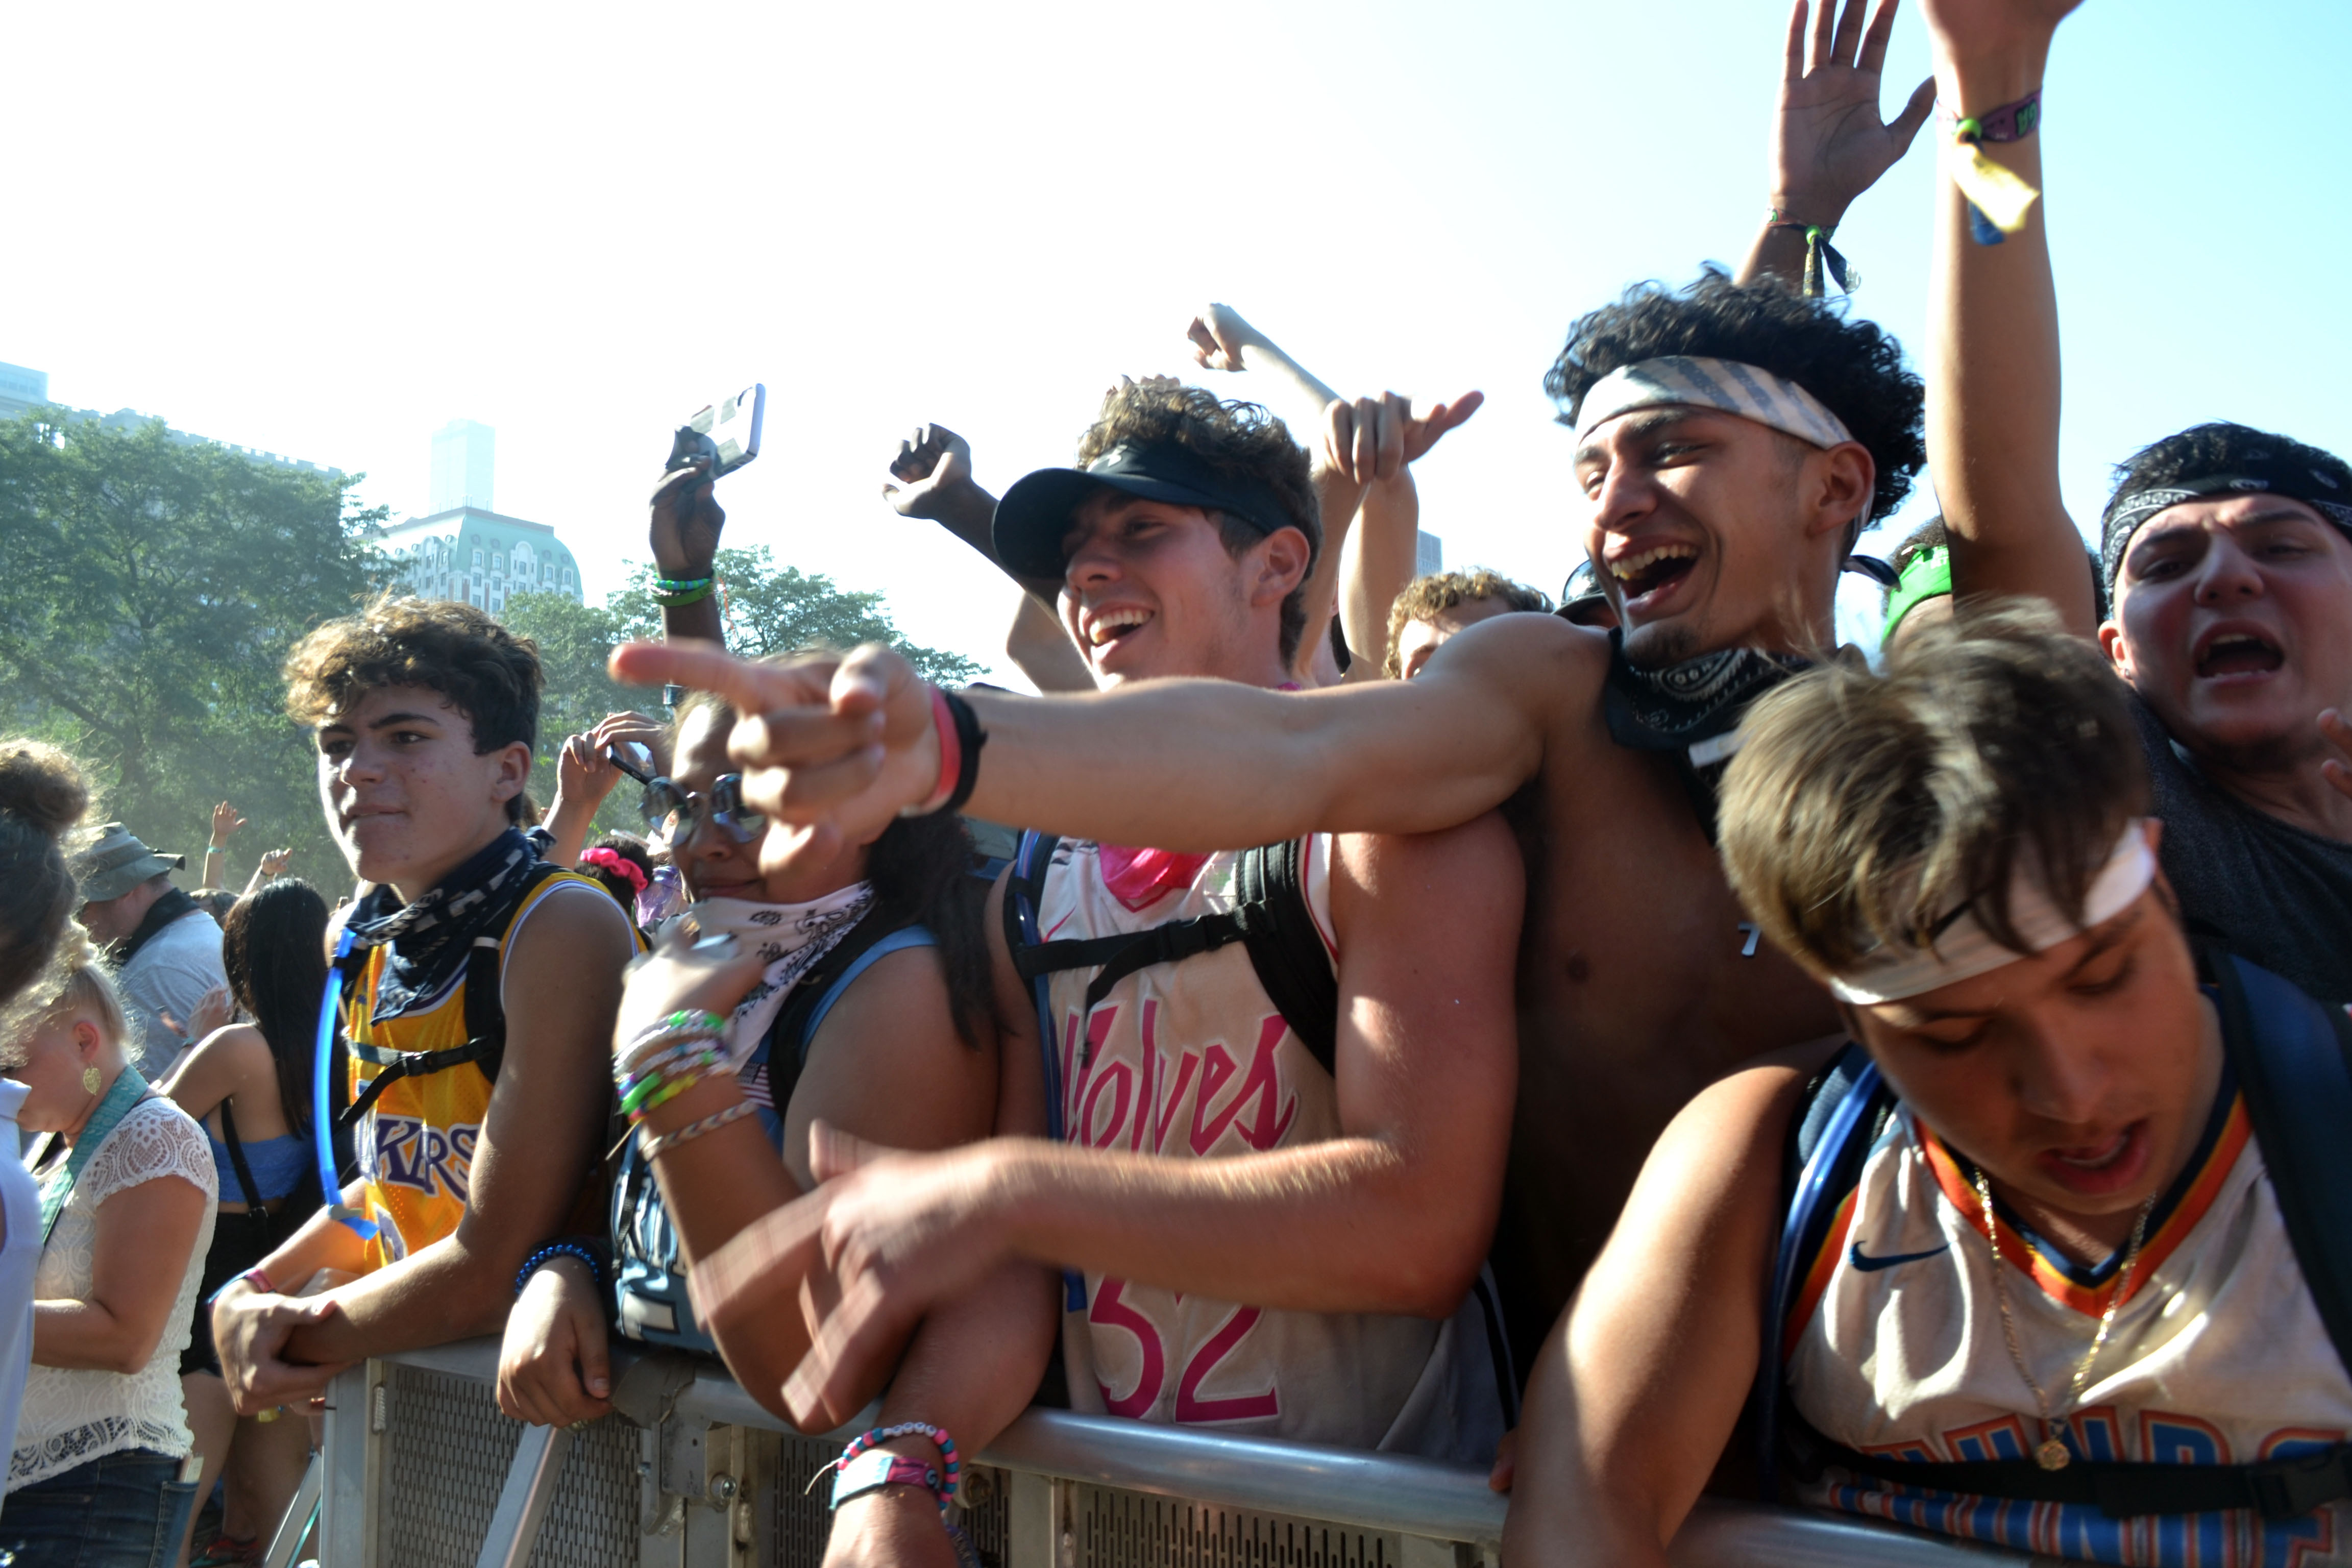 Concertgoers cheer at Lollapalooza in August 2019. The festival returns to Grant Park next week despite ongoing concerns about COVID-19.